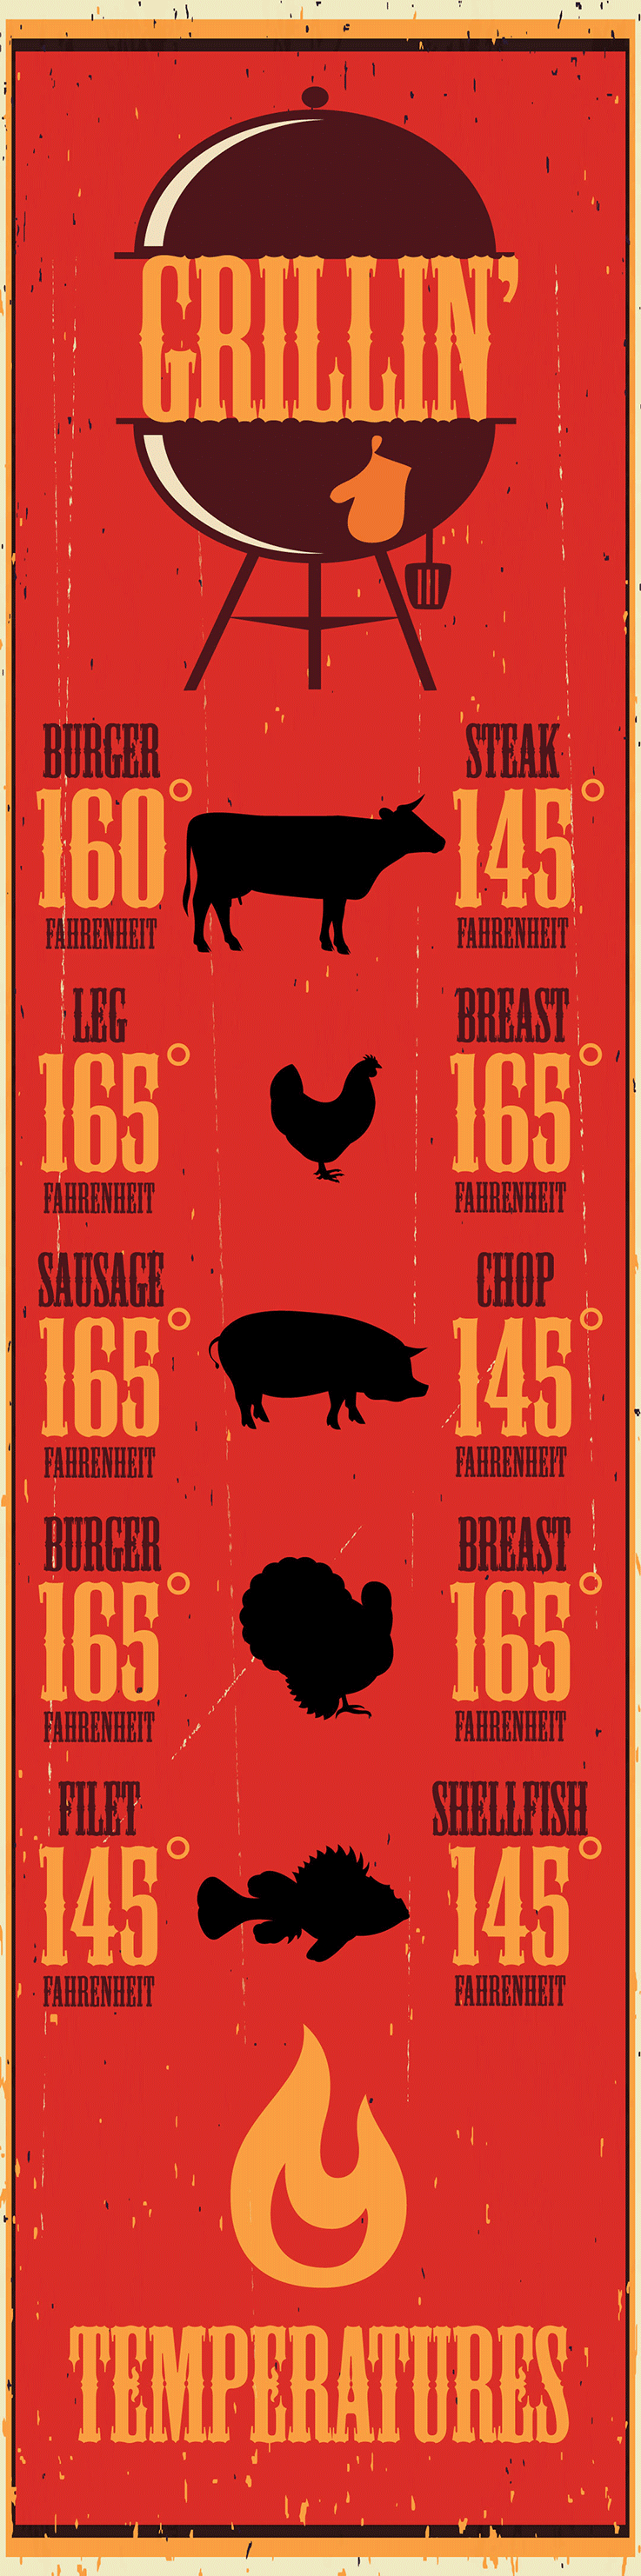 BBQ grilling temeratures infographic